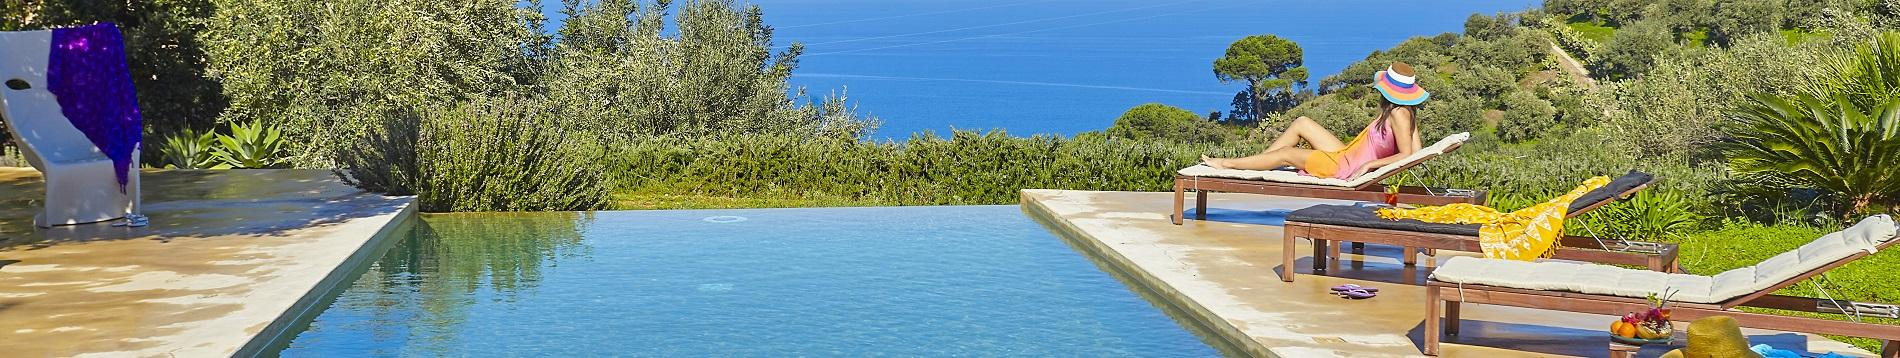 Luxury villas in Sicily with pools